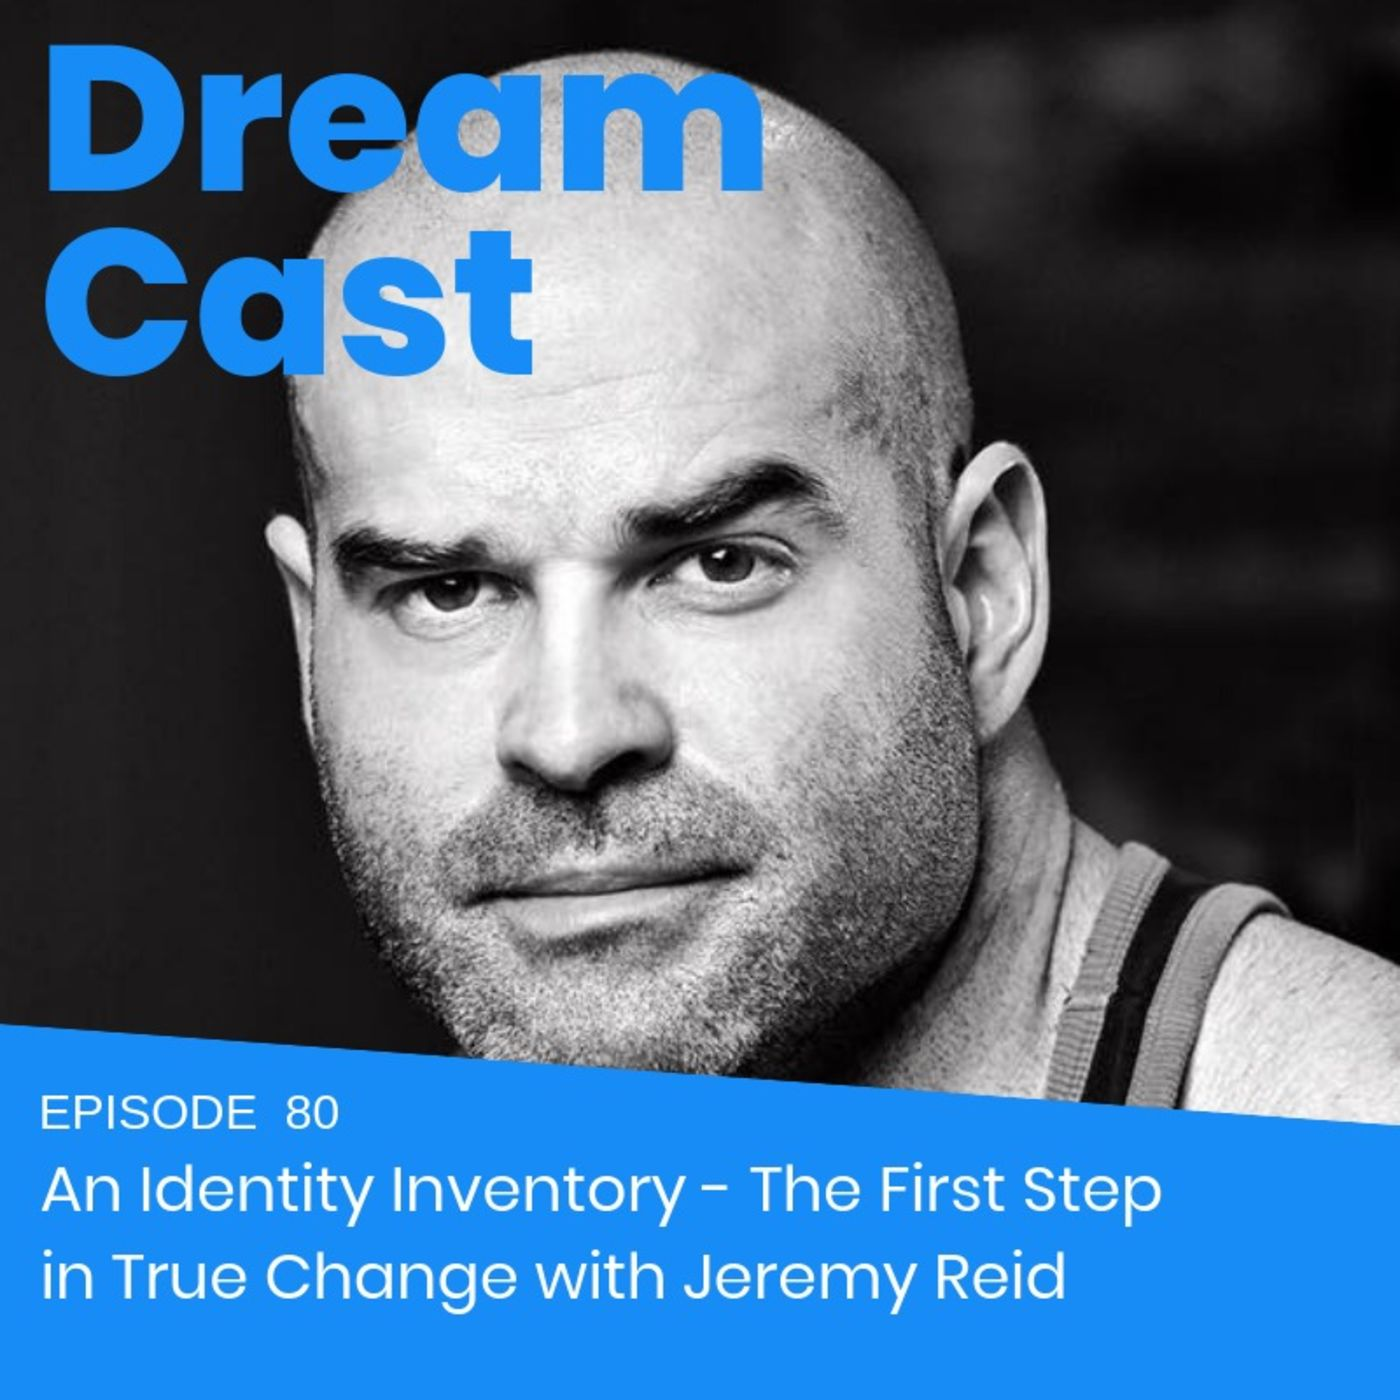 Episode 80 -  An Identity Inventory: The First Step in True Change